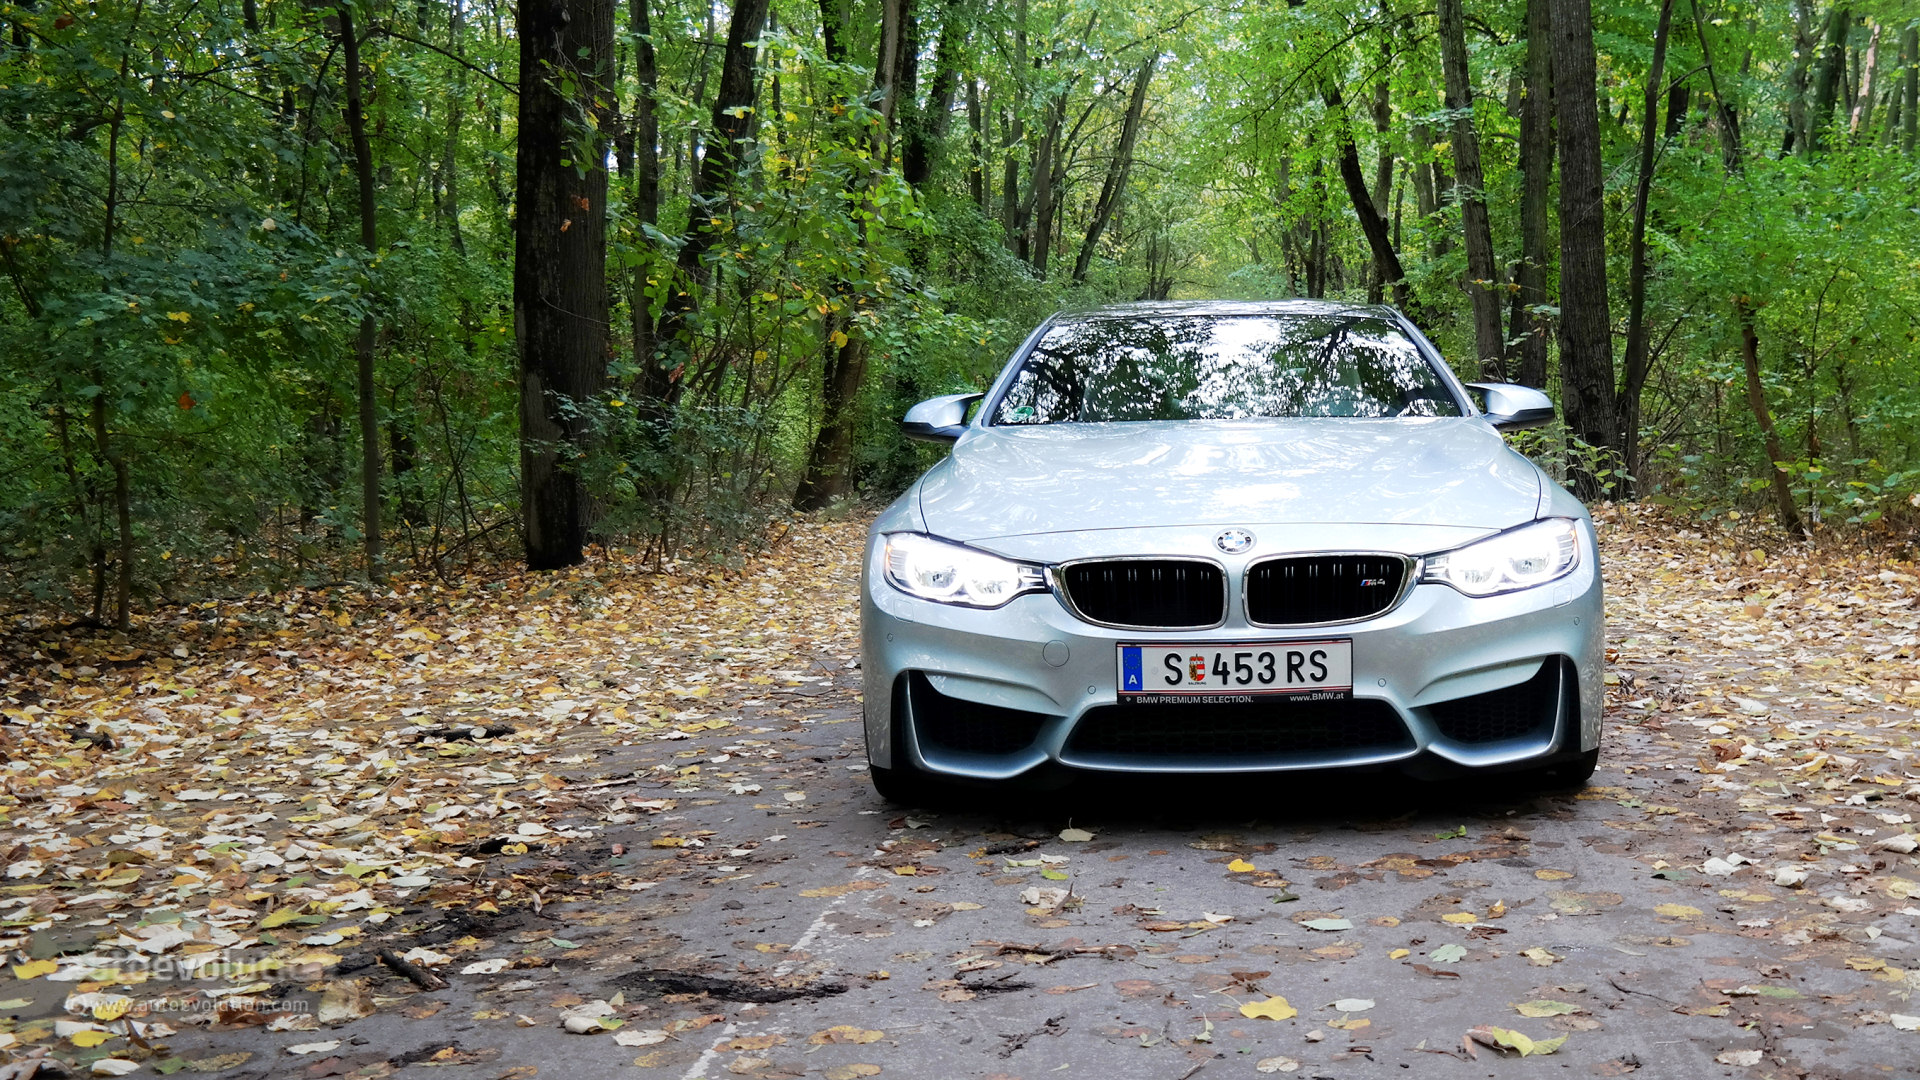 The practical side of the bmw m4 autoevolution